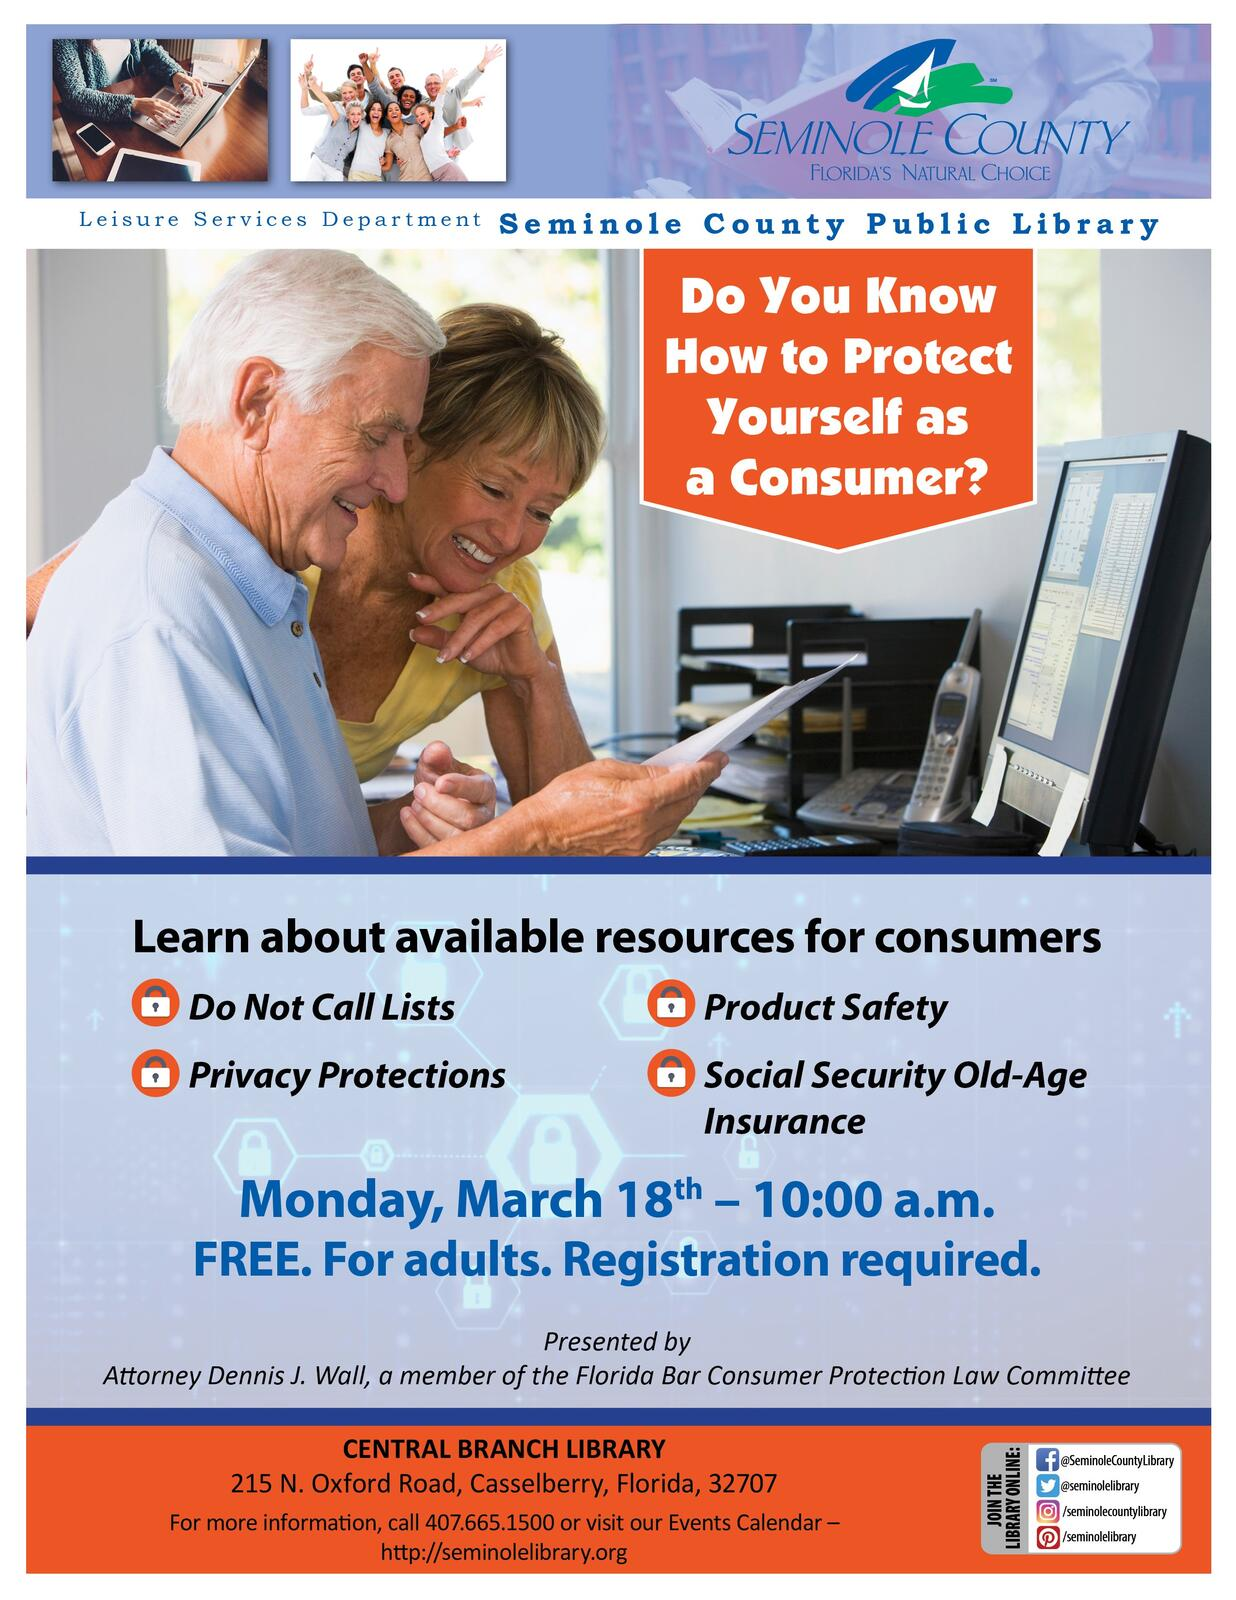 Consumer Protection Awareness @ the Library (Seminole County